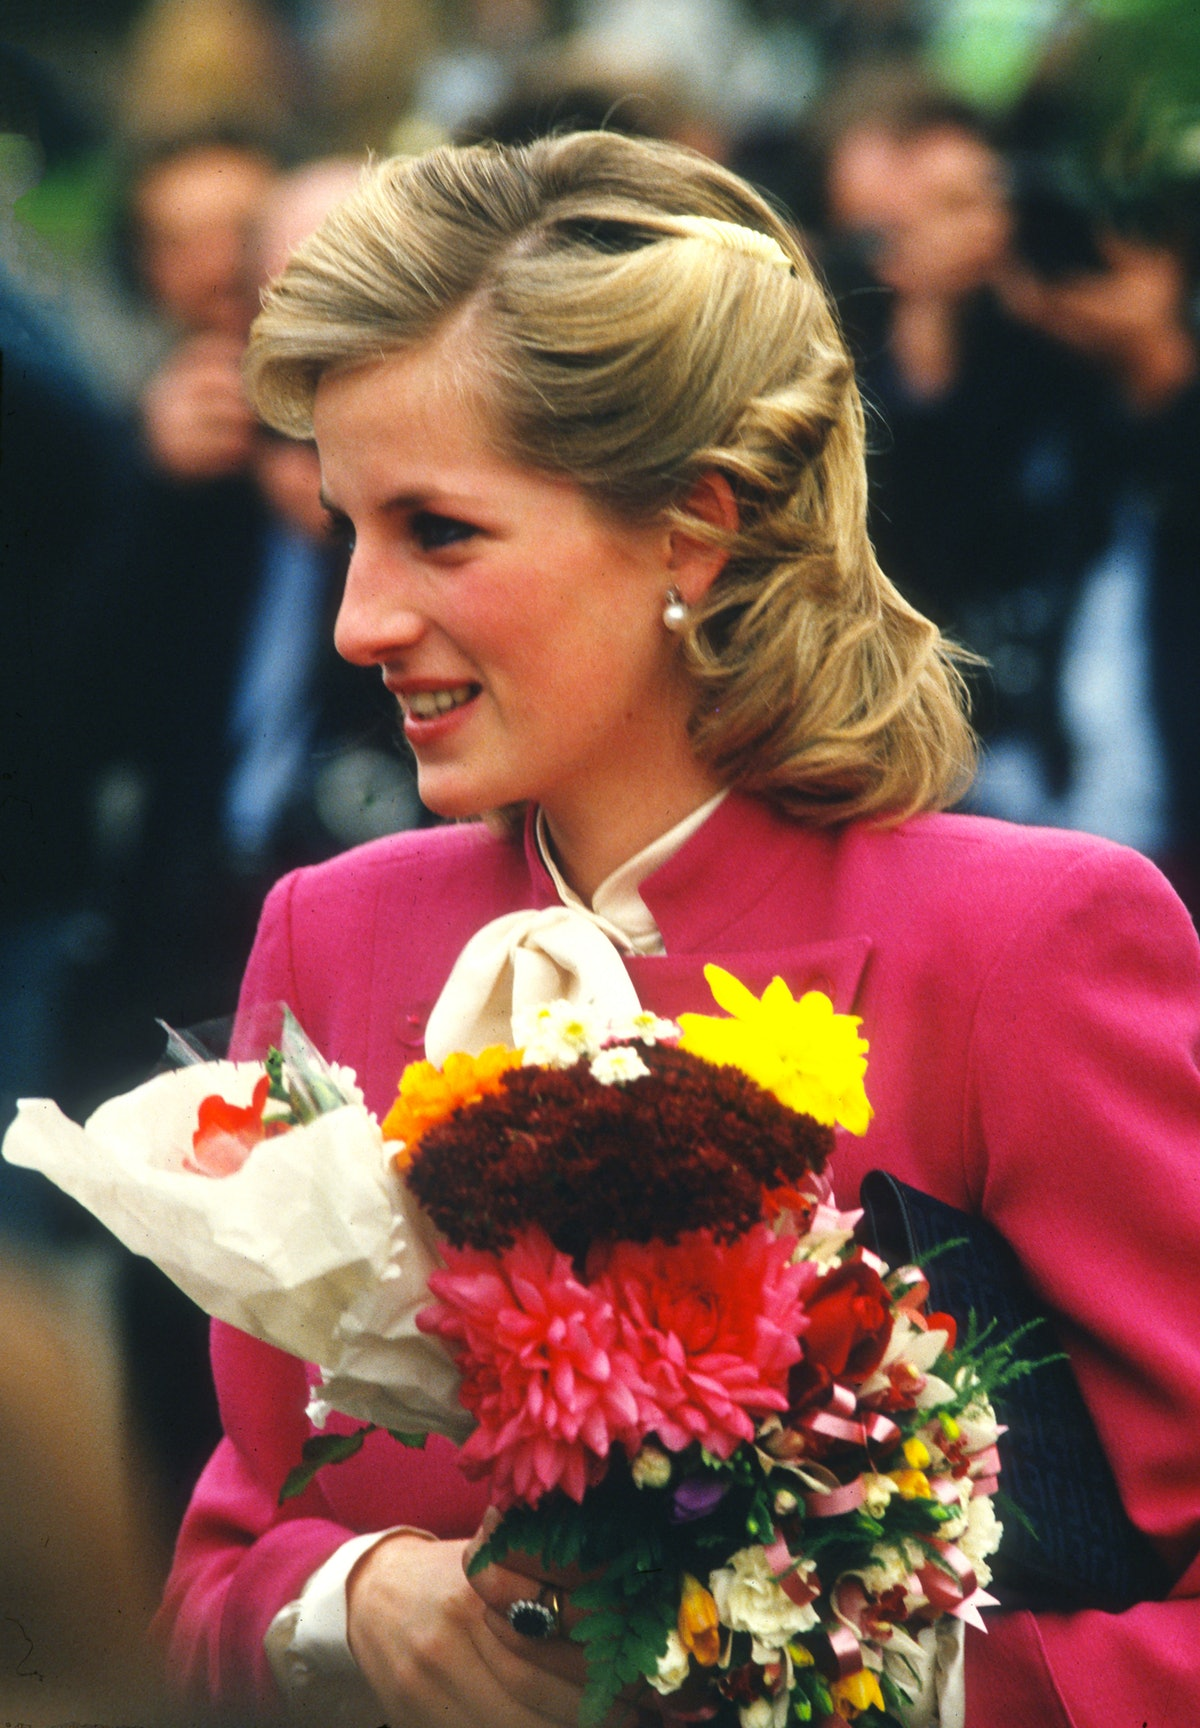 Diana, Princess of Wales, is known for her signature short cut, but this 1940s-inspired look showed off her longer layers.